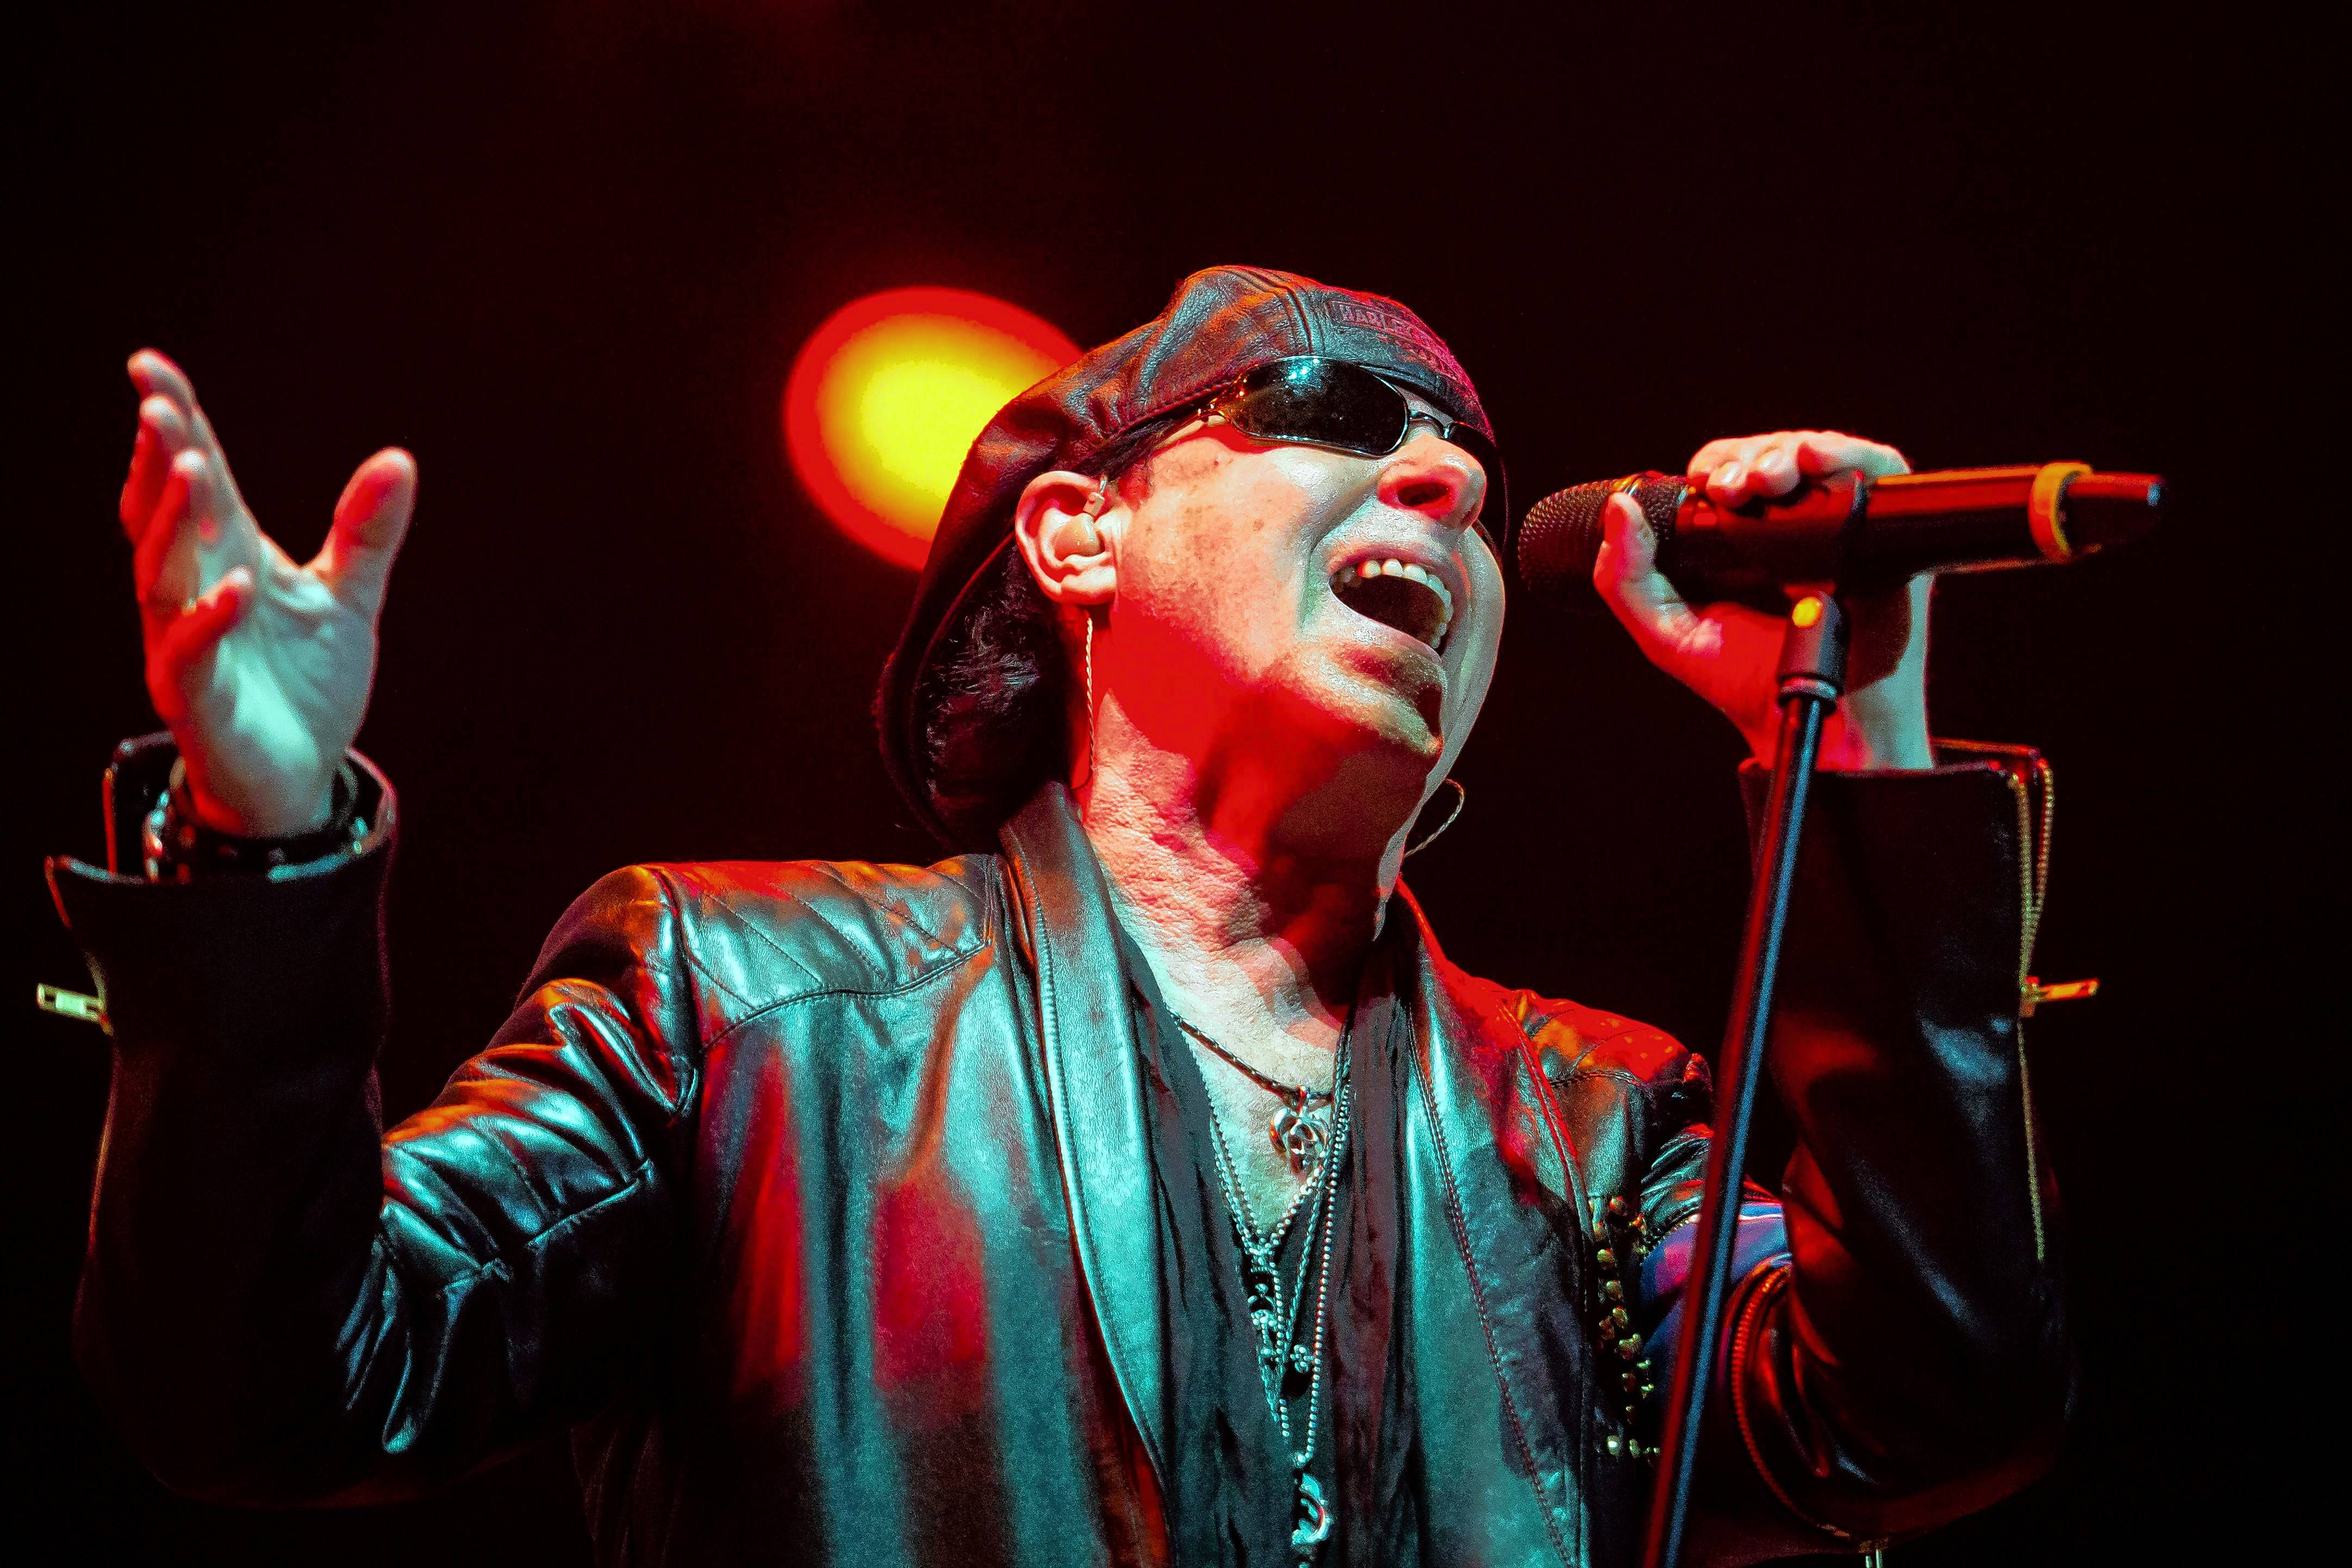 The Scorpions perform at the Allstate Arena in Rosemont on Saturday, Sept. 23.